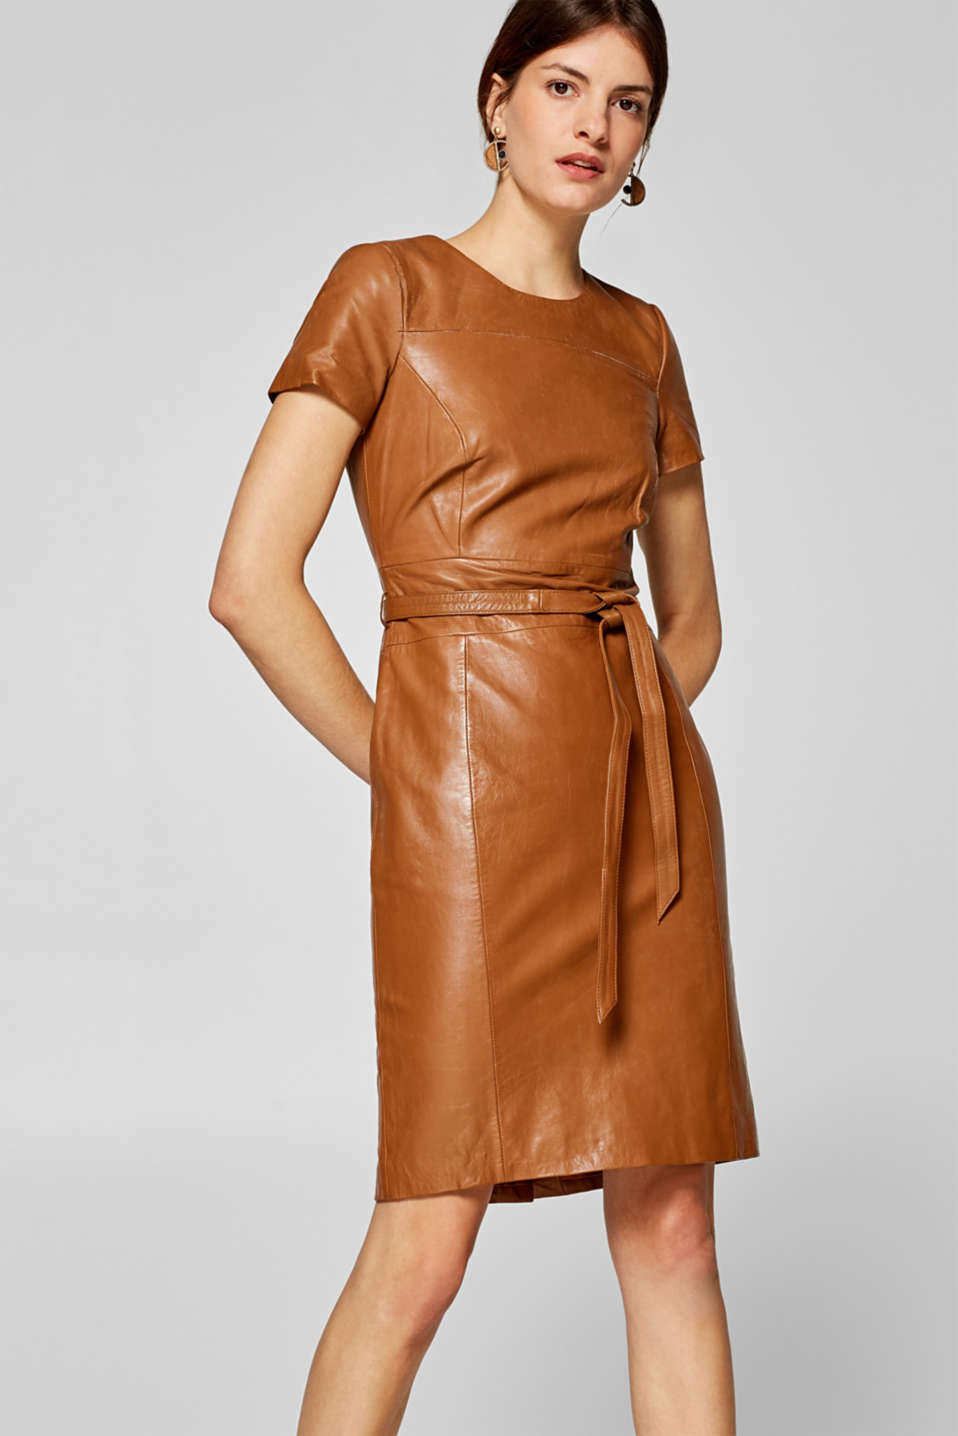 Esprit - Fitted dress with a tie-around belt, 100% leather